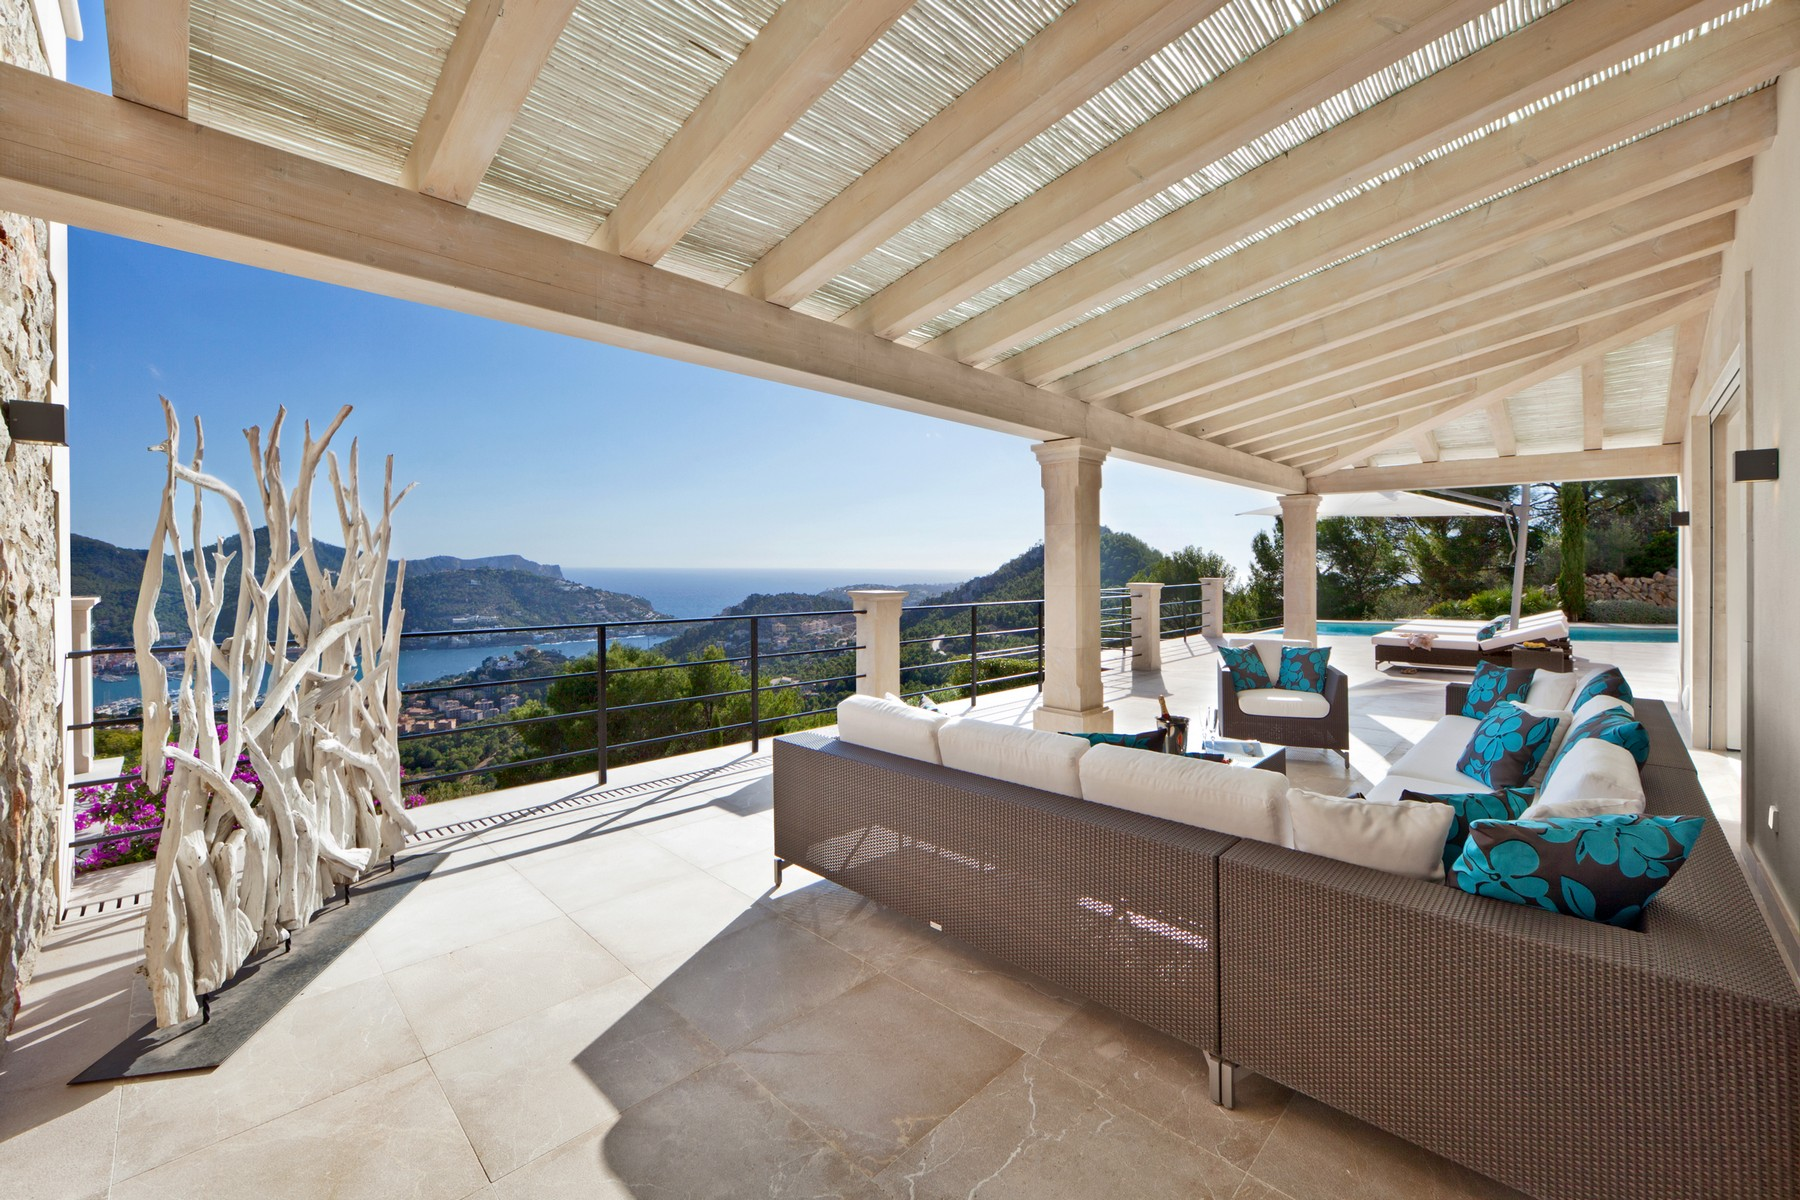 Single Family Home for Sale at Luxury newly built Villa in Monport, Port Andratx Port Andratx, Mallorca, 07157 Spain